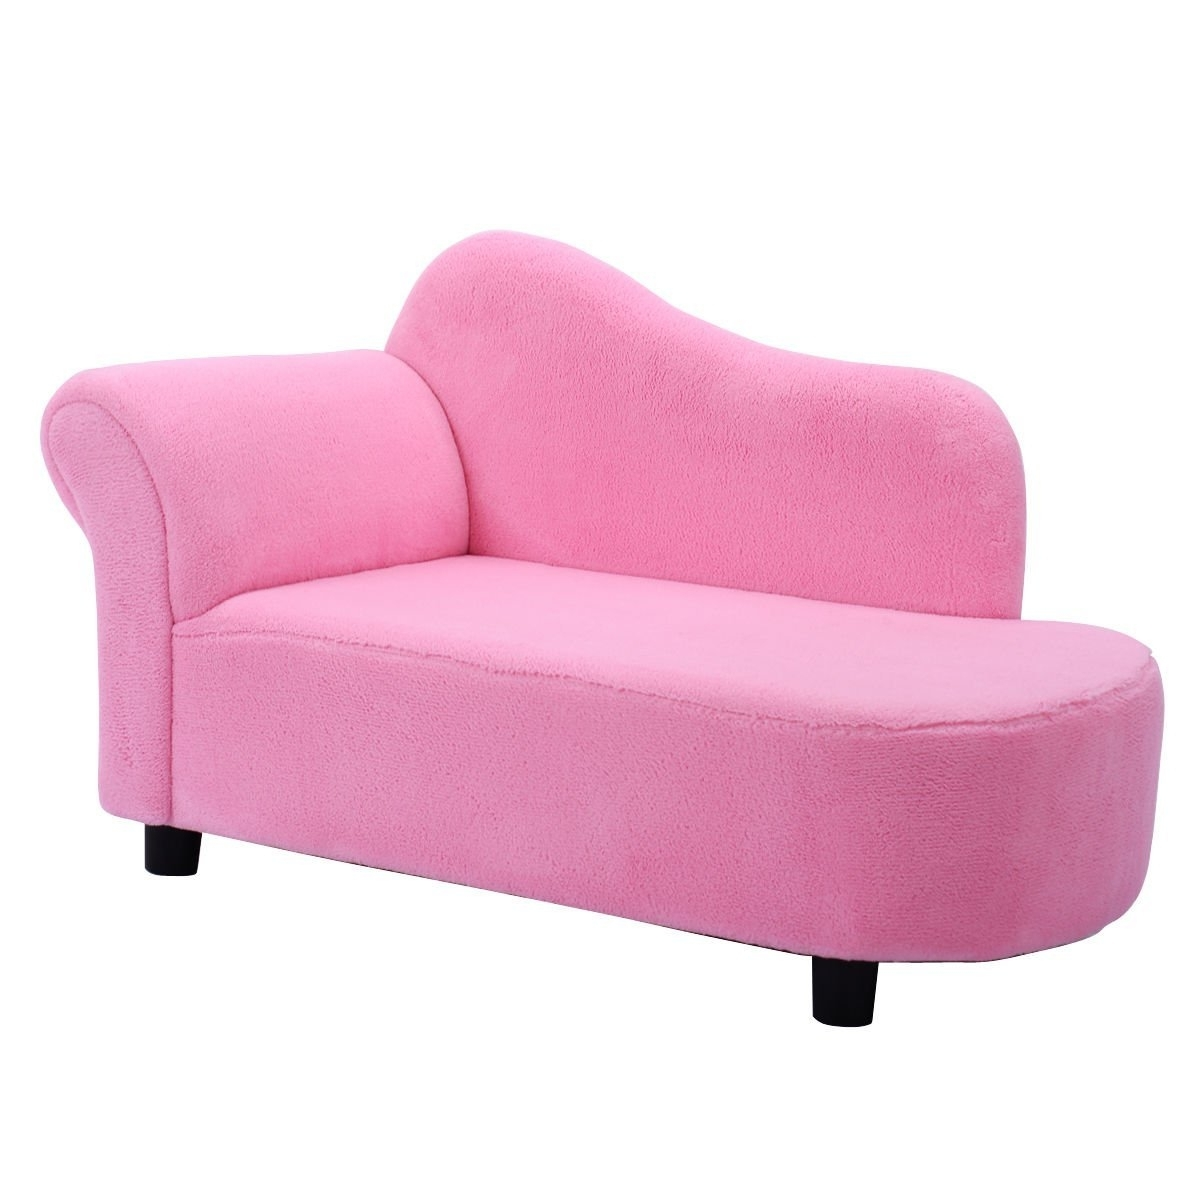 Children's Chaise Lounges Pertaining To Latest Amazon: Costzon Kids Chaise Lounge Sofa Couch Set Children (View 3 of 15)